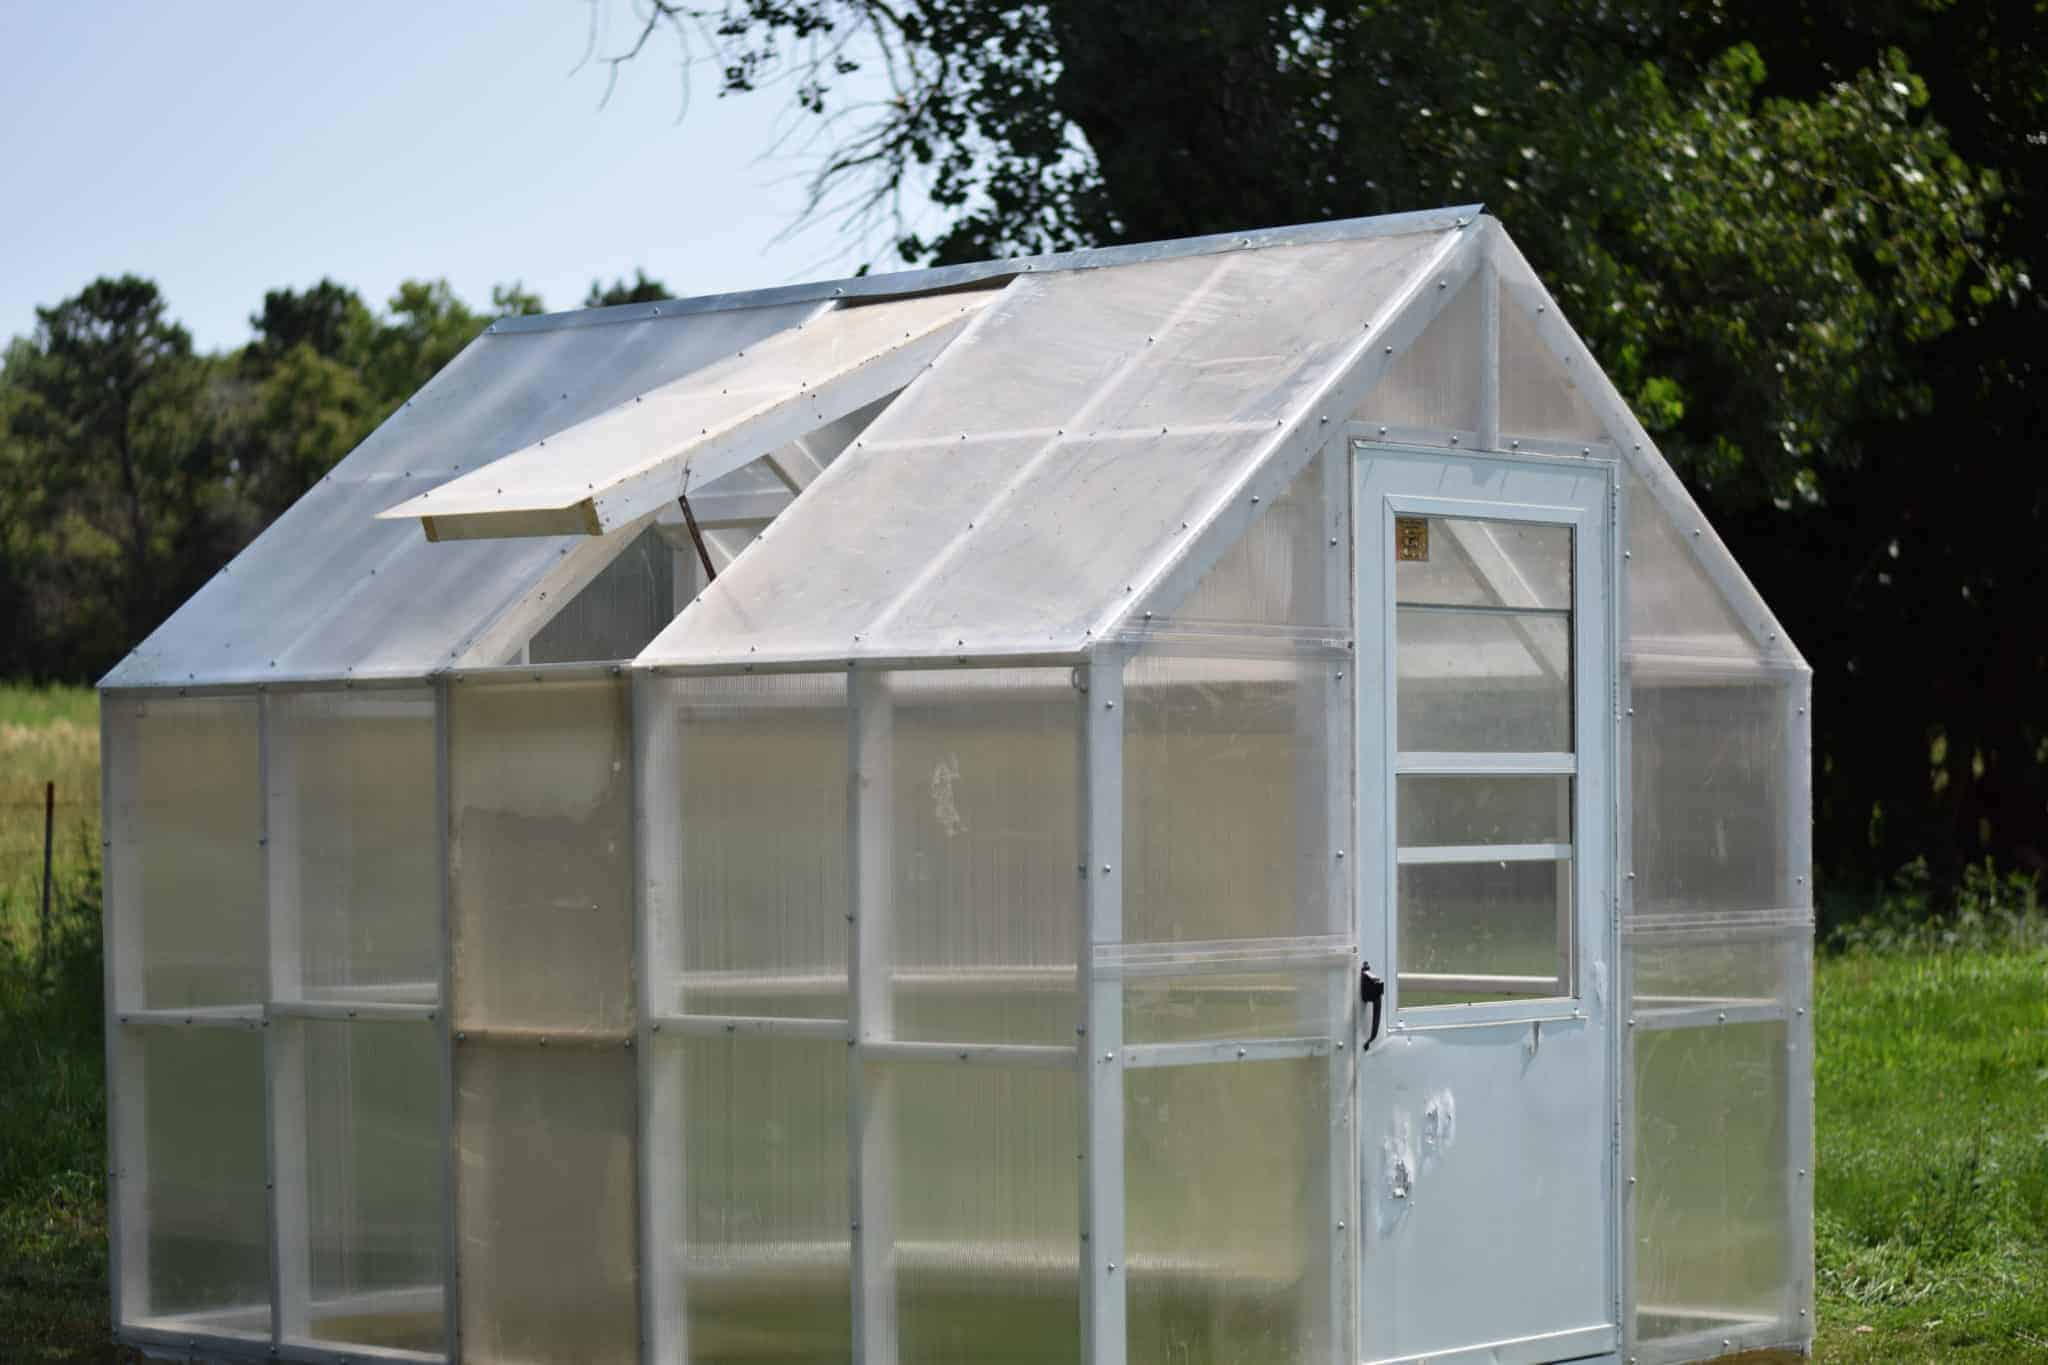 Pinterest Haus Und Garten How To Build A Greenhouse Plus Supply Cost What To Plant